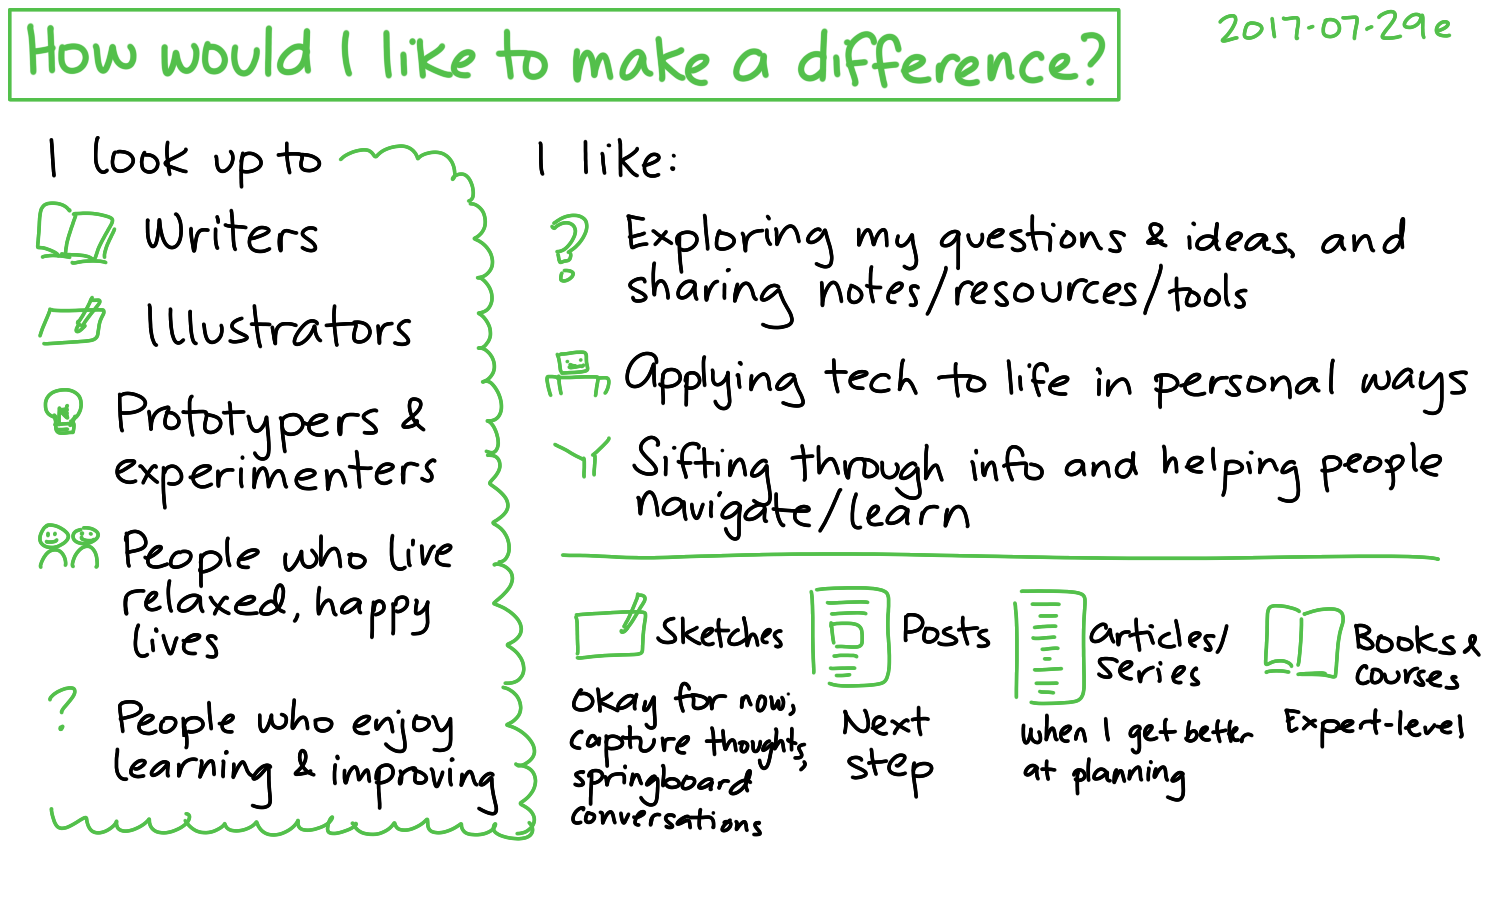 2017-07-29e How would I like to make a difference #impact #significance #purpose.png